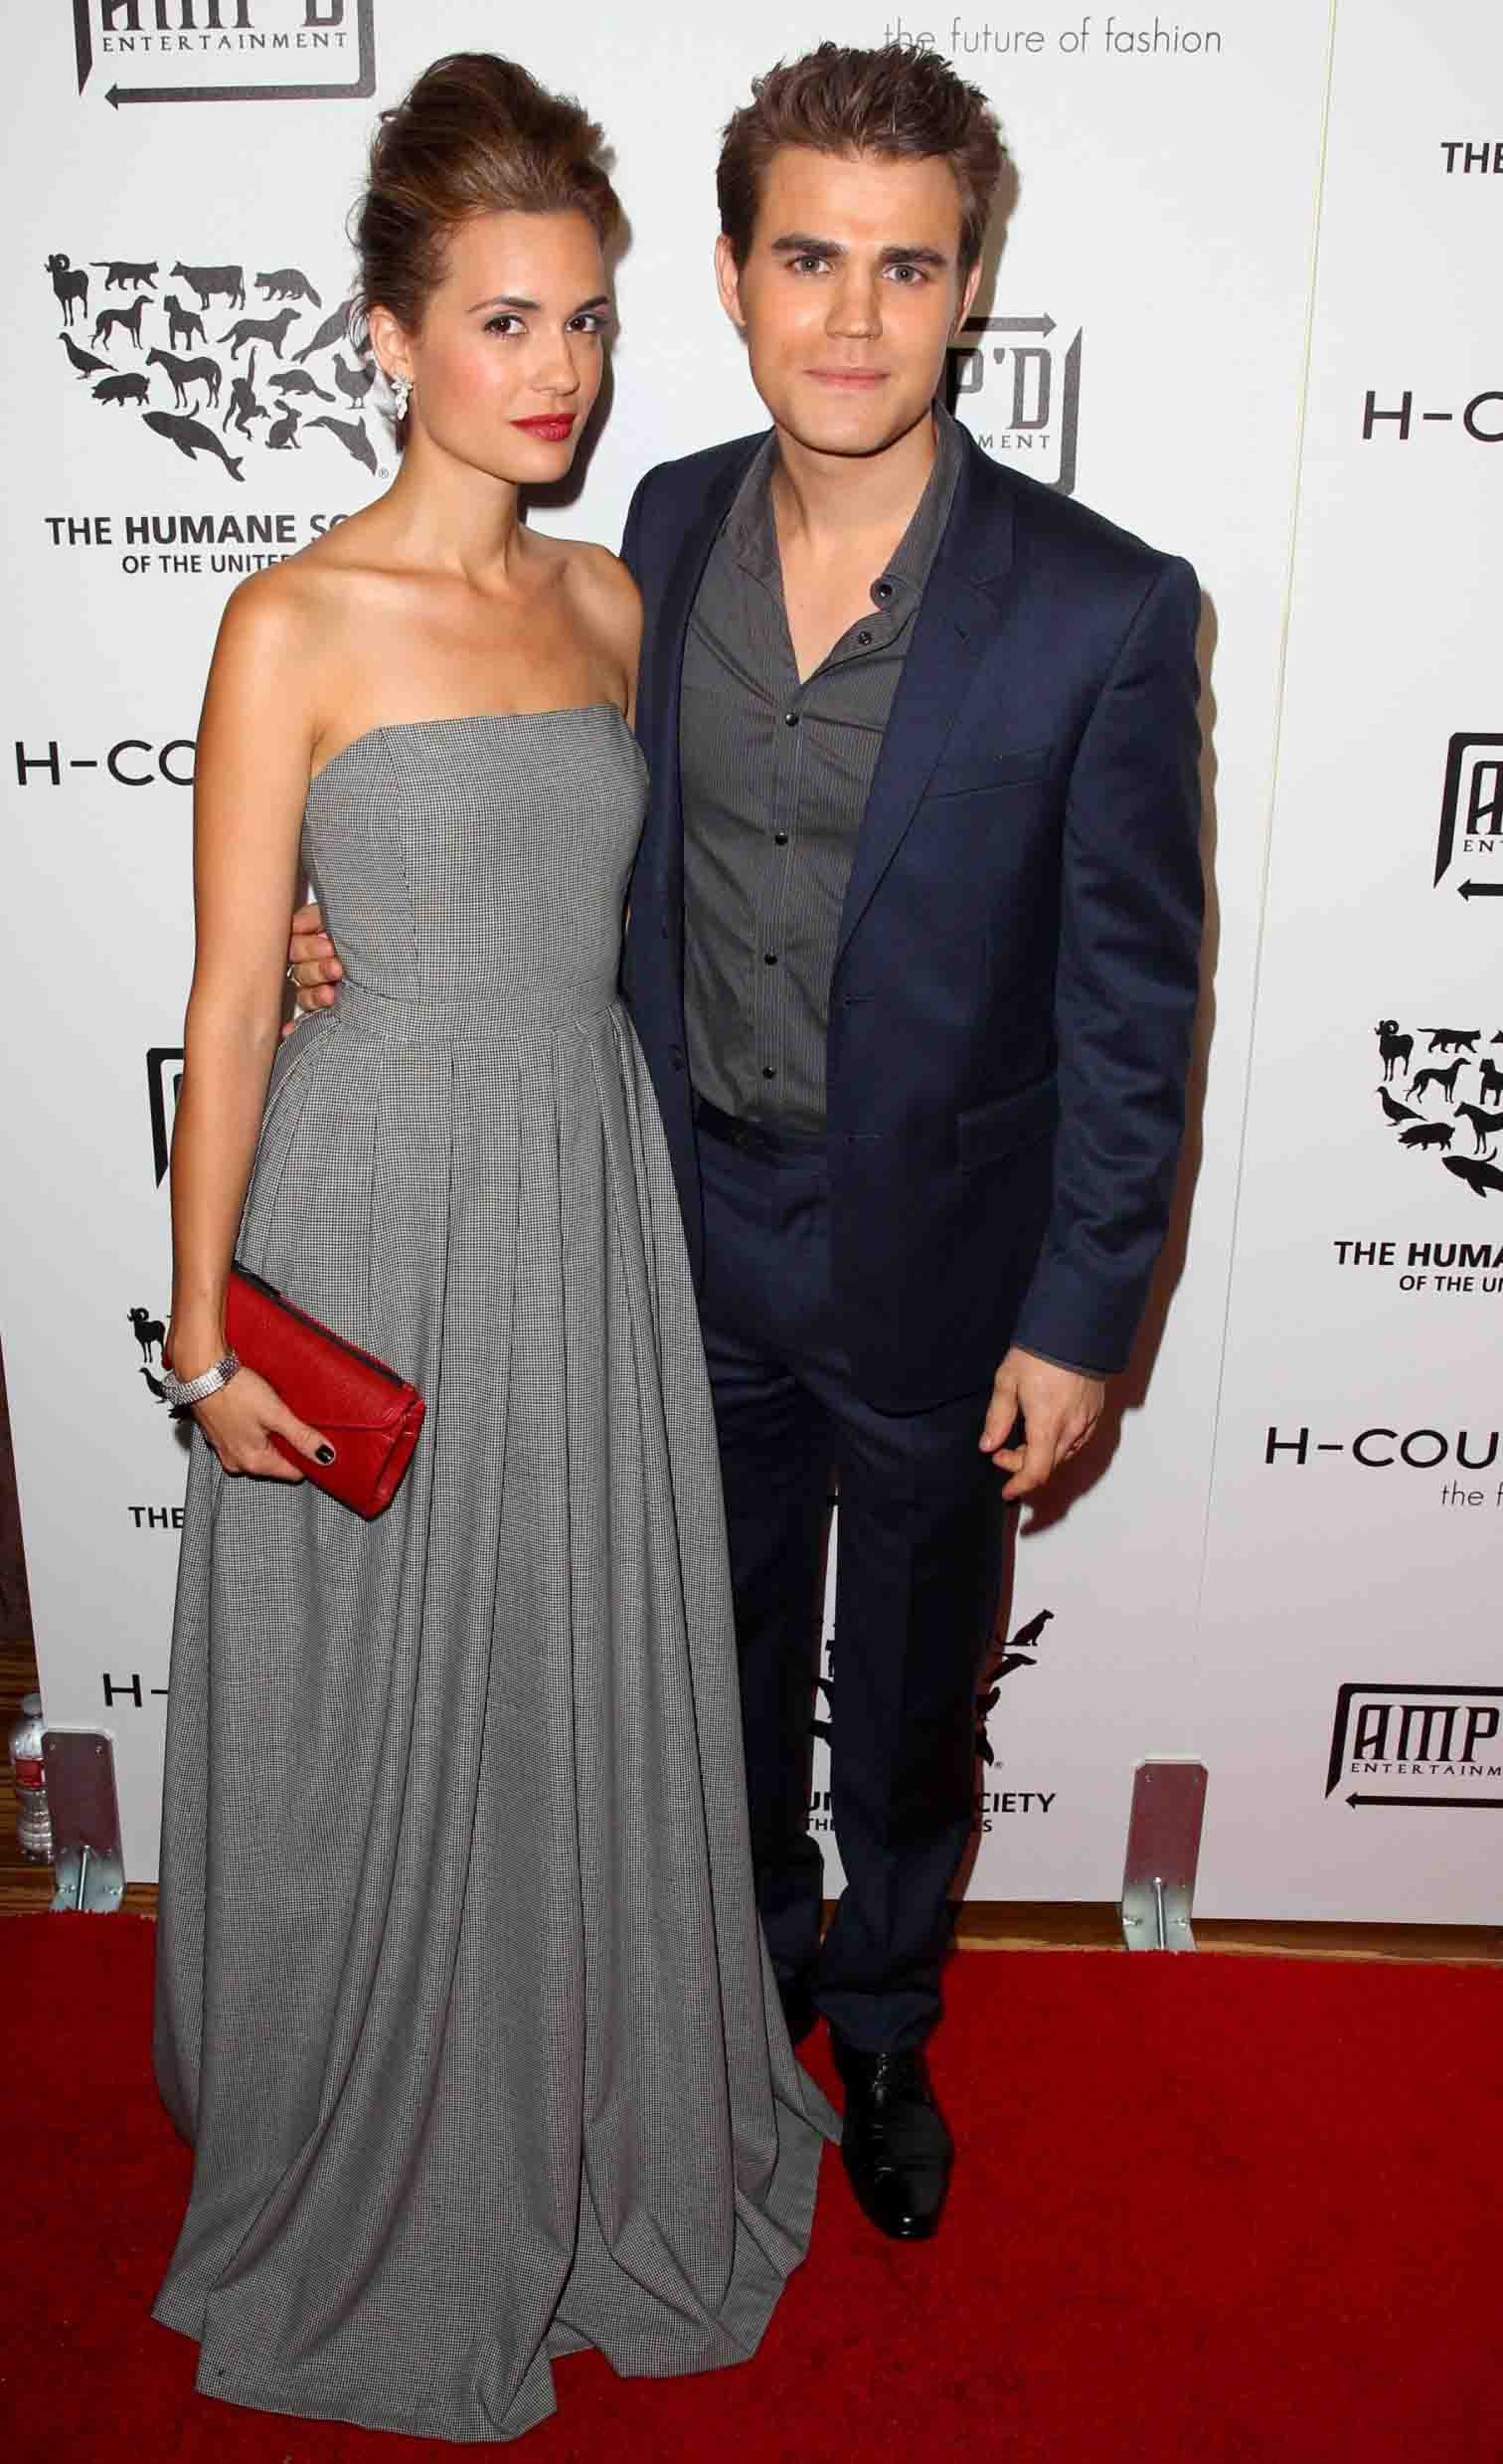 Paul Wesley and Torrey DeVitto host the Humane Society of the United States H-Couture 2012 Fur-Free Fashion Show